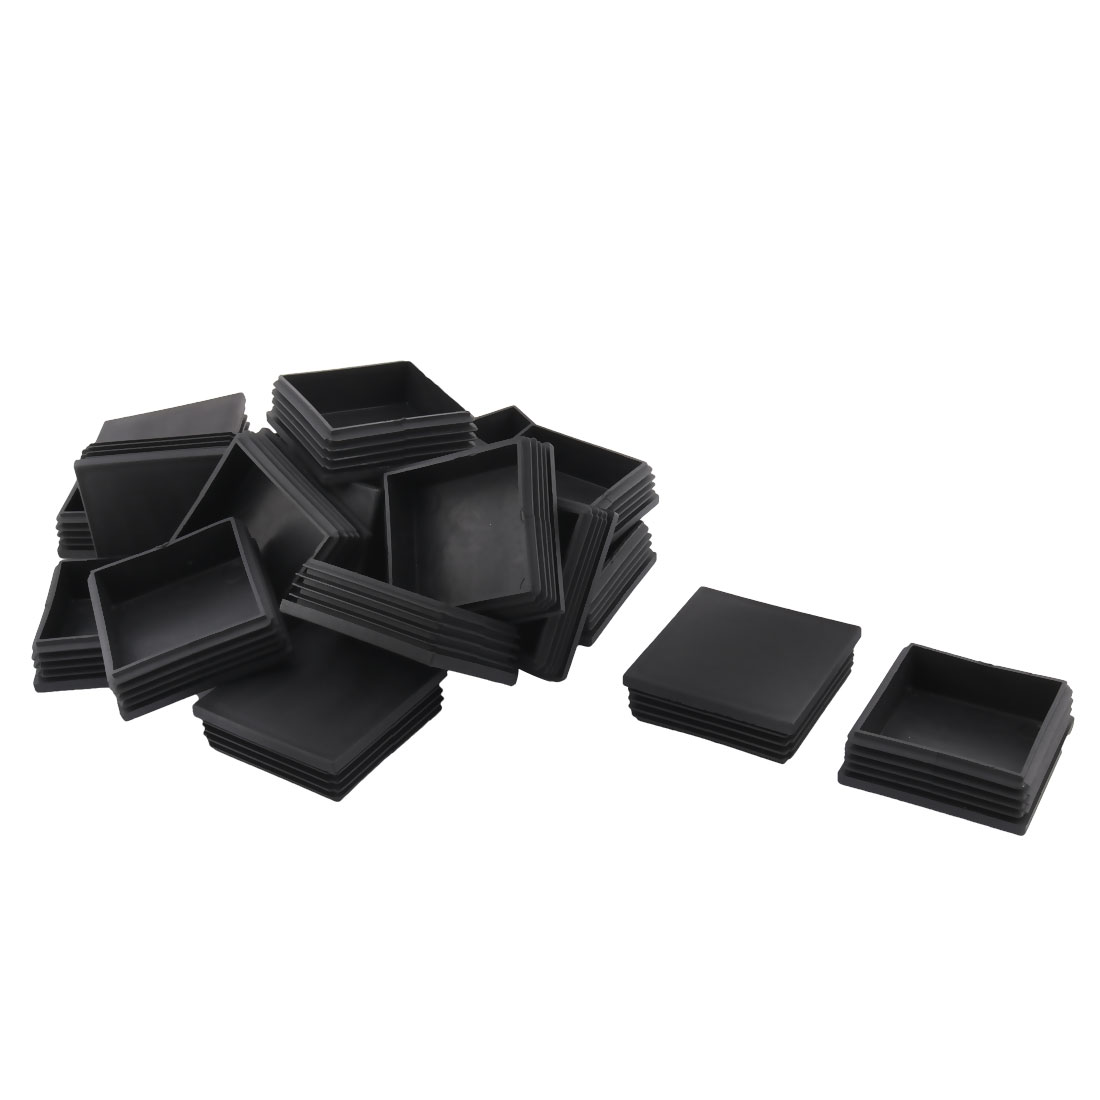 Plastic Square Design Tube Insert End Blanking Cover Cap Black 70 x 70mm 20pcs